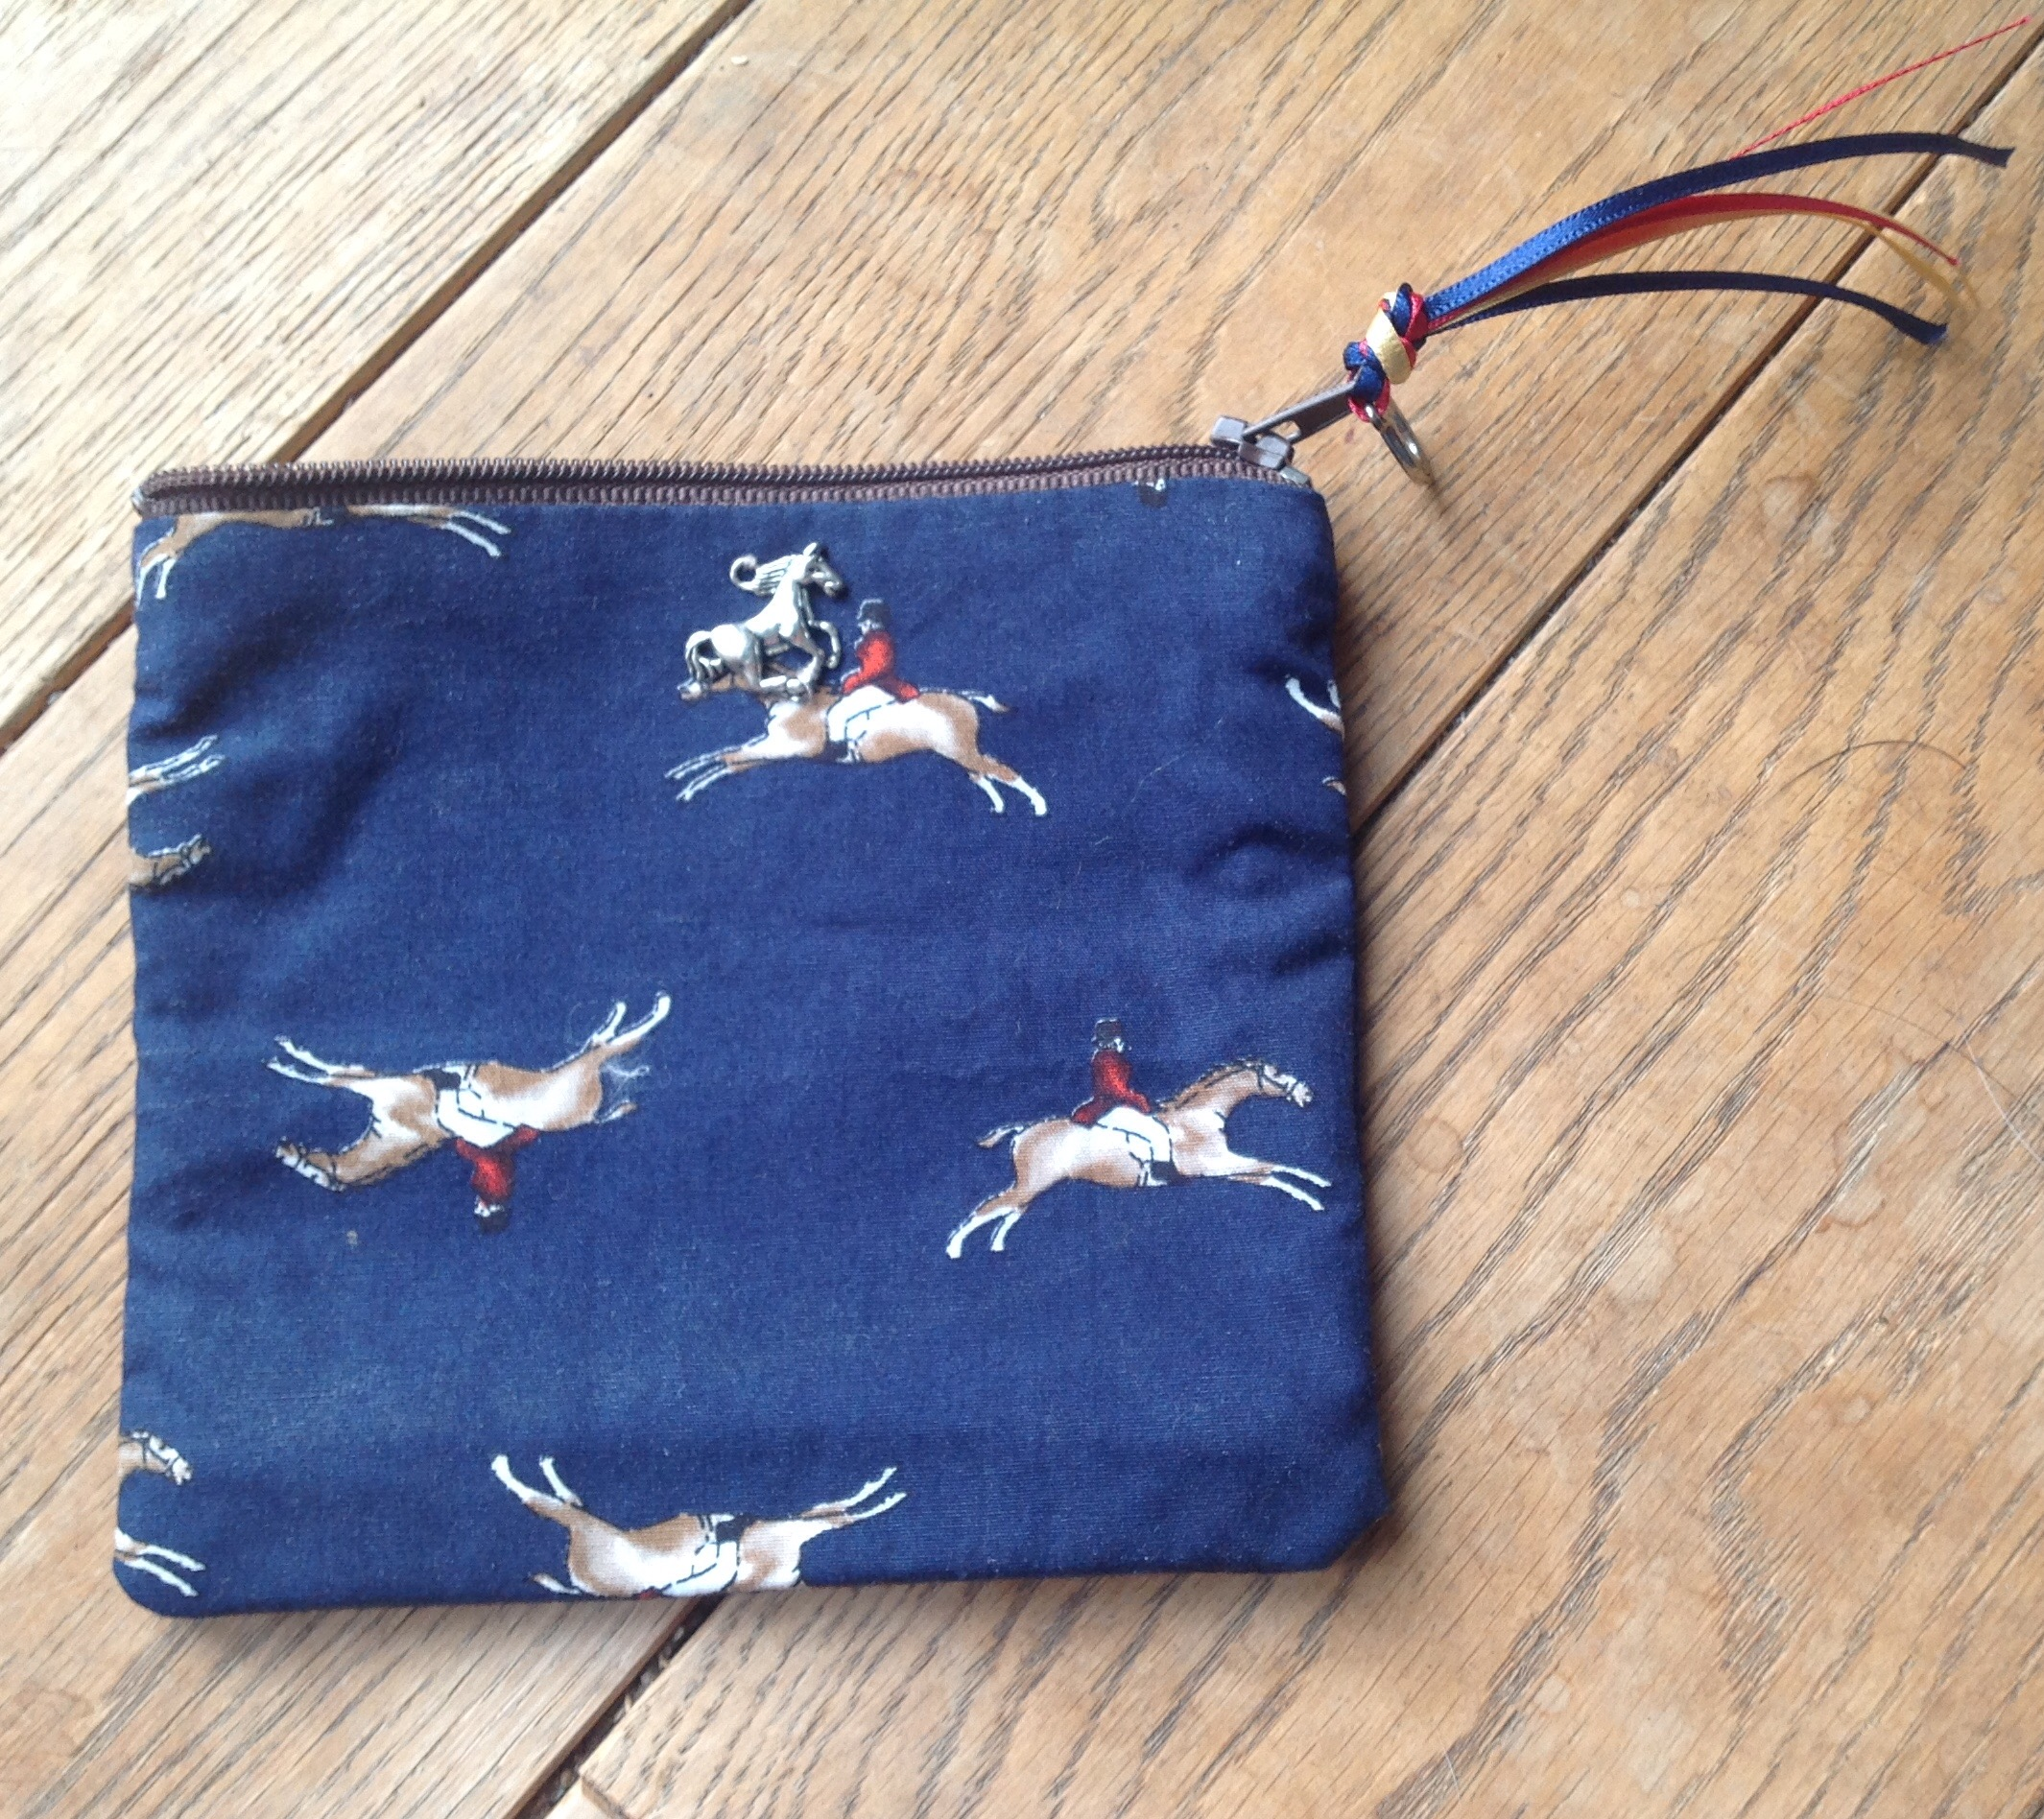 Coin purse - Gallop design in navy colourway